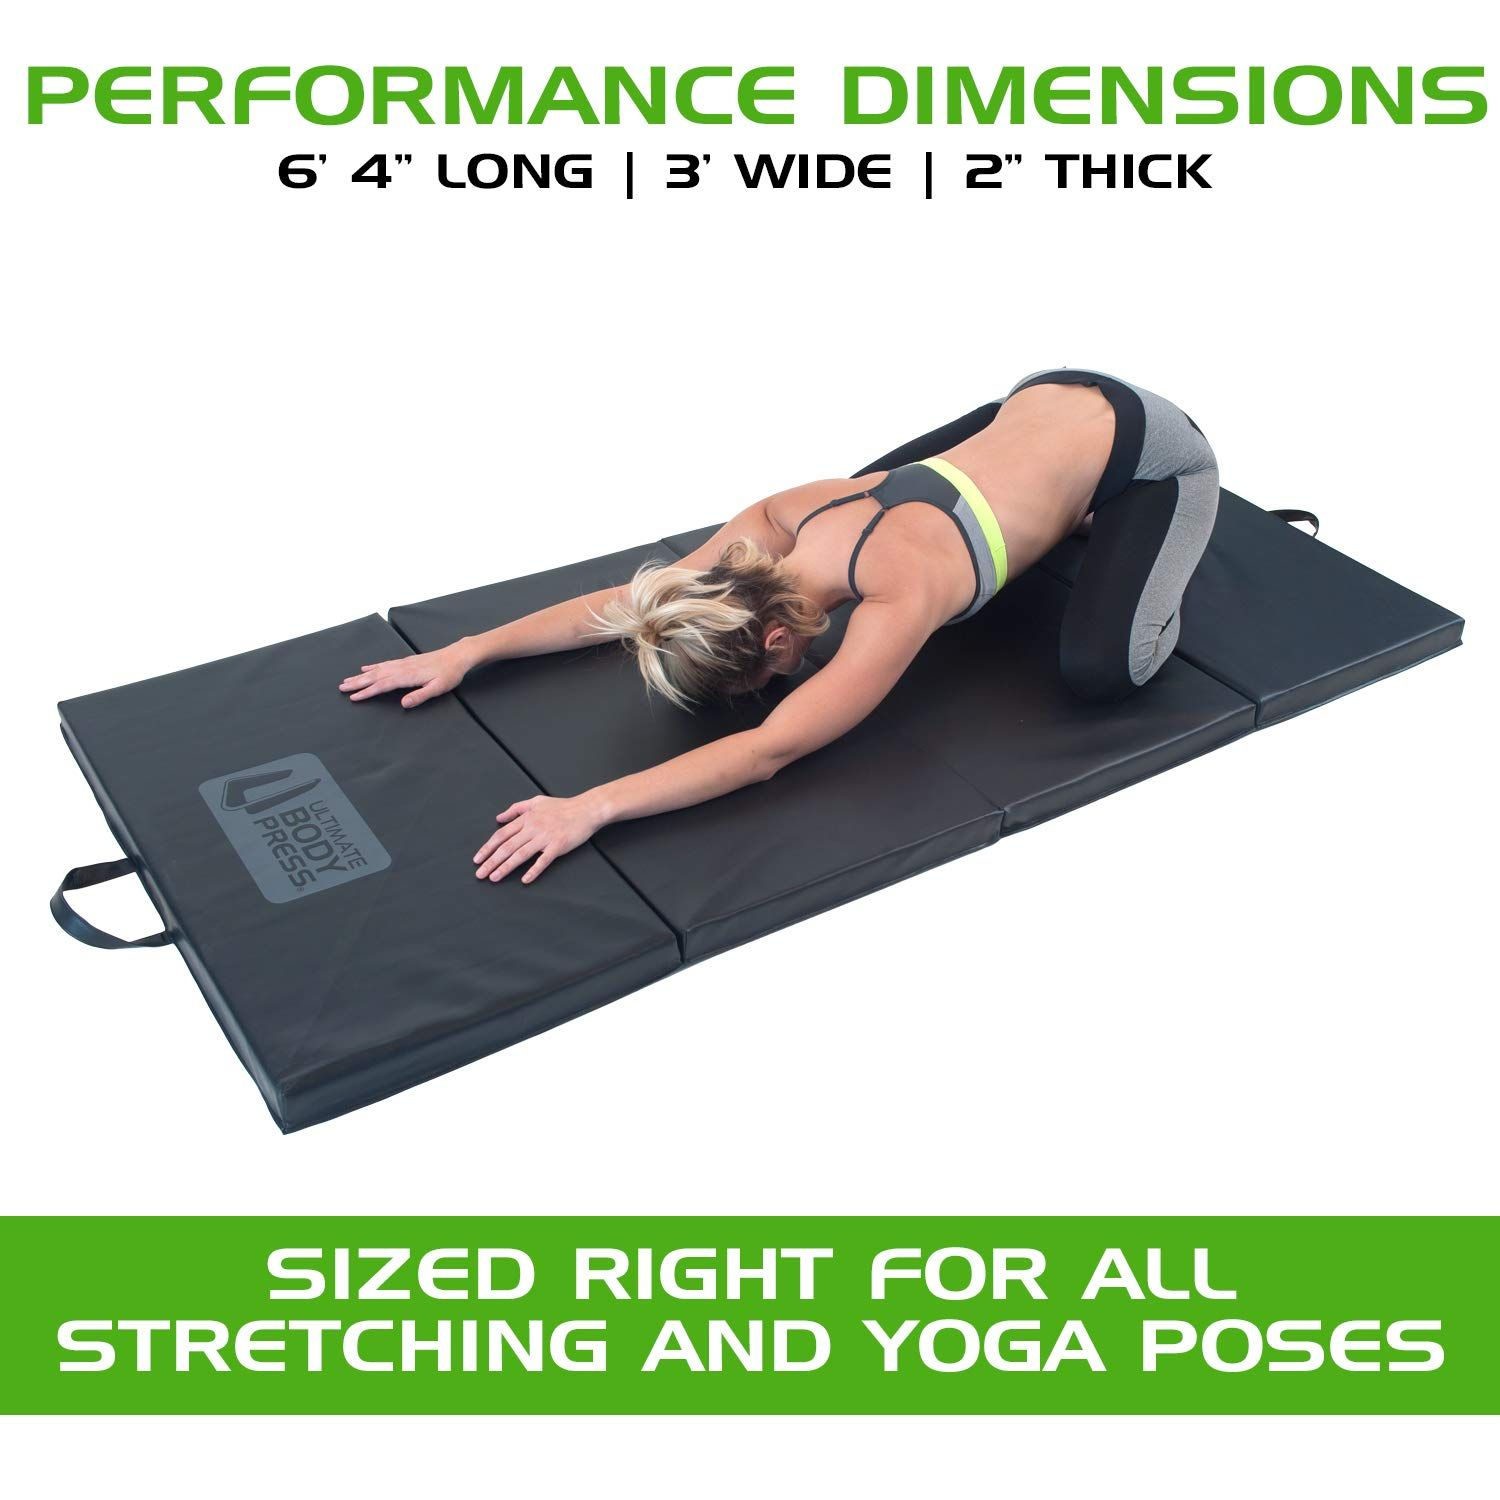 Ultimate Body Press Exercise And Yoga Mat 6 4 X 3 X 2 Four Panel Folding Mat With Premium Materials And Foam You Can Get Mo Yoga Block Yoga Exercise